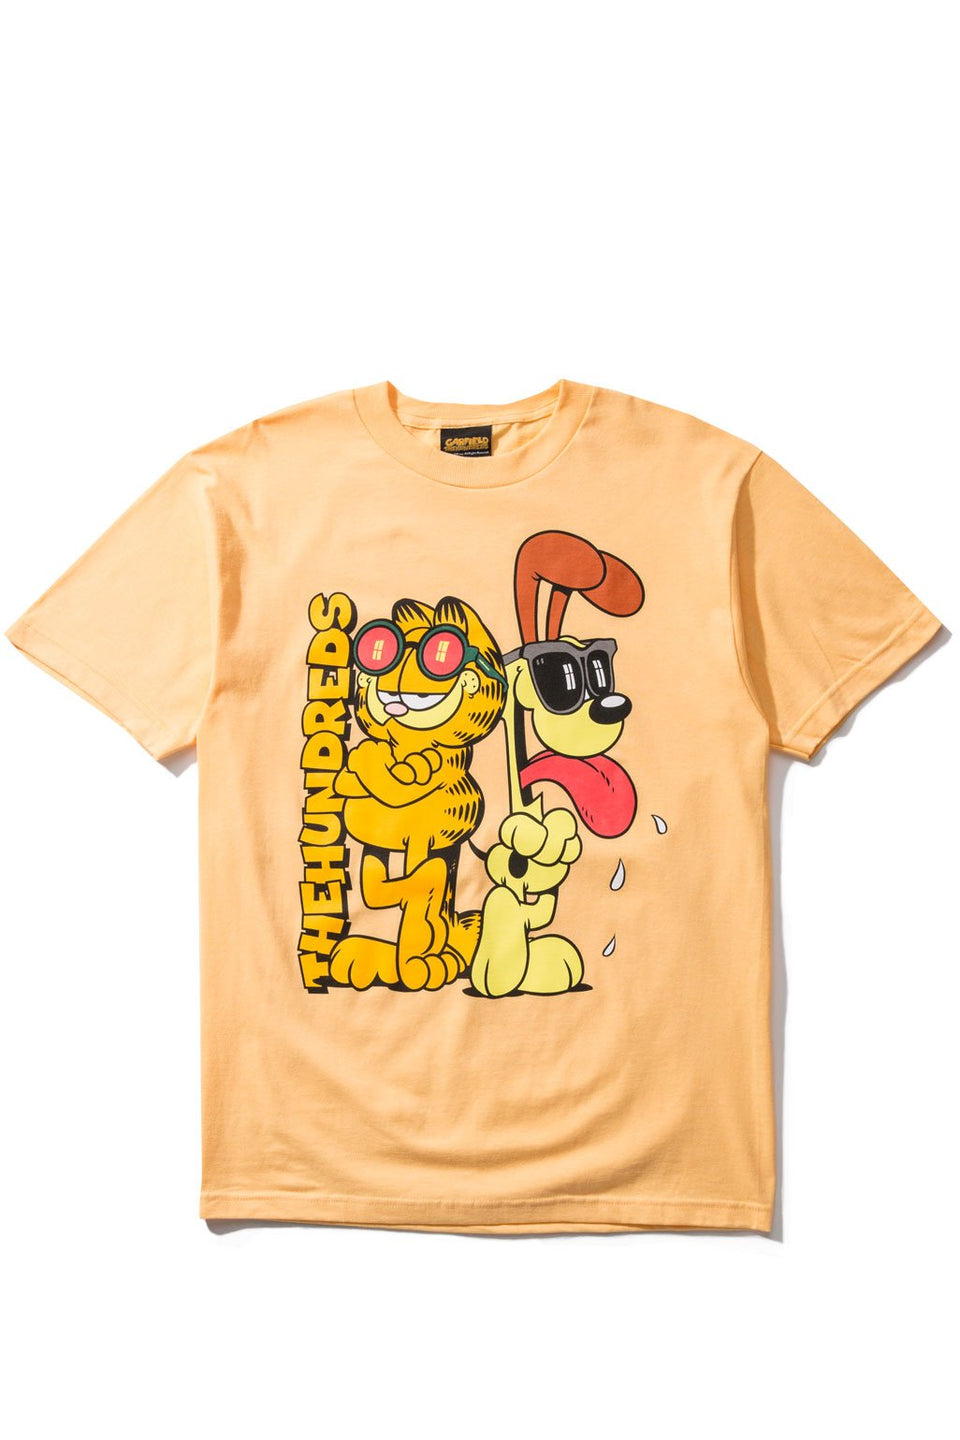 Garfield Odie T-Shirt